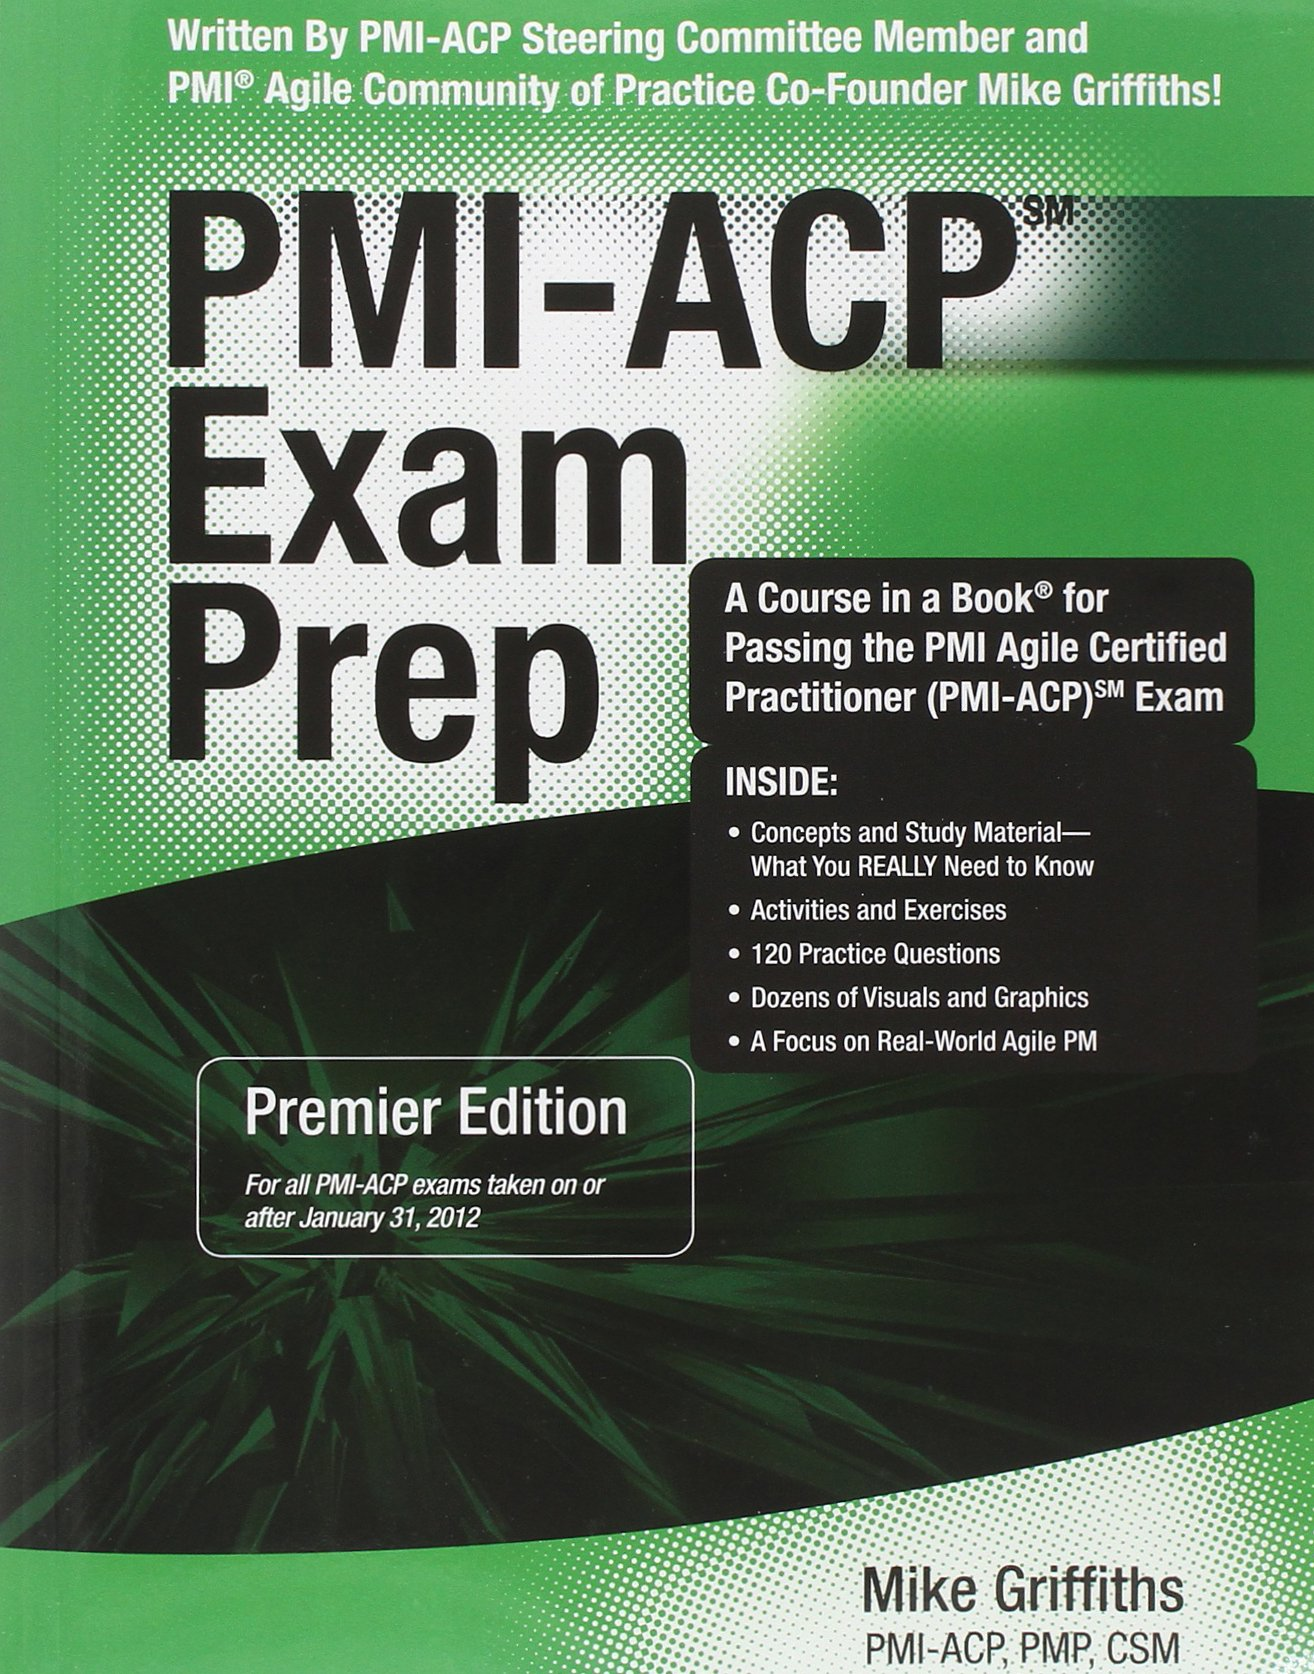 Pmi acp exam prep premier edition a course in a book for passing pmi acp exam prep premier edition a course in a book for passing the pmi agile certified practitioner pmi acp exam mike griffiths pmi acp pmp csm xflitez Choice Image